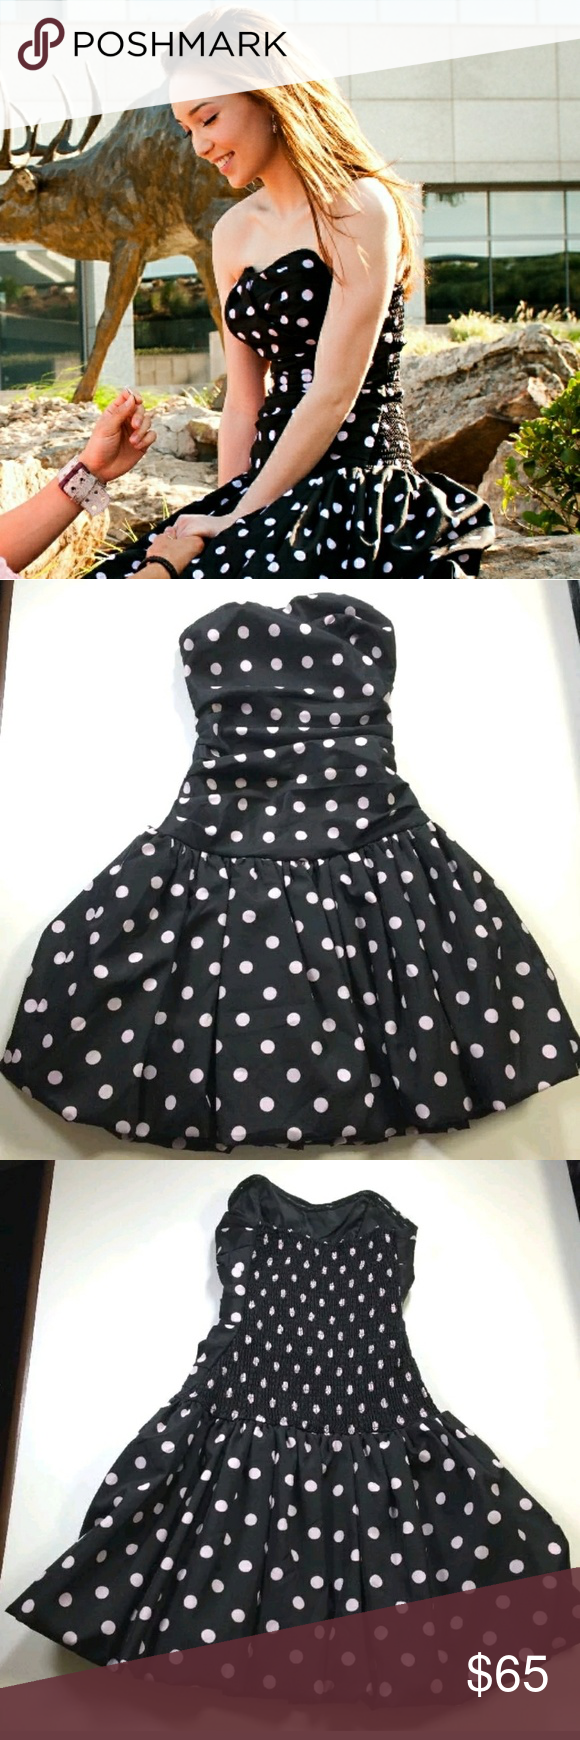 4ca865789f Luella for Target Black w  Pink Polka dots Dress EUC - Only wore this once  for my engagement photoshot. No stains